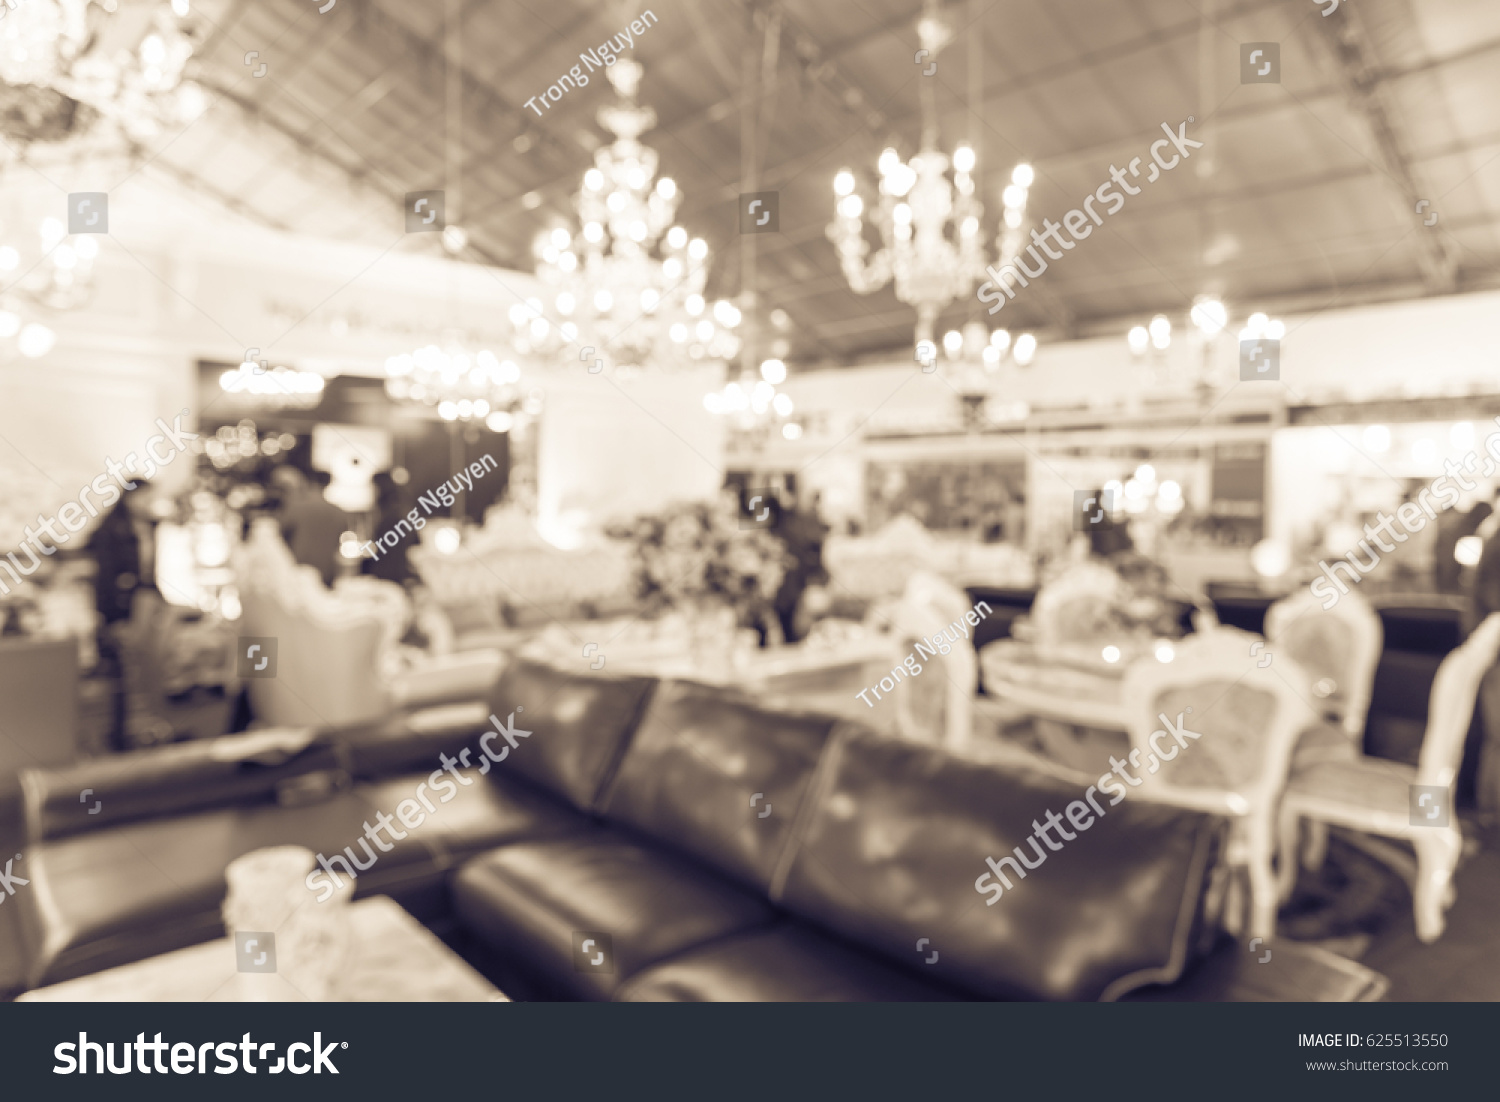 Blurred furniture exhibition expo in hanoi vietnam abstract bokeh background of modern interior